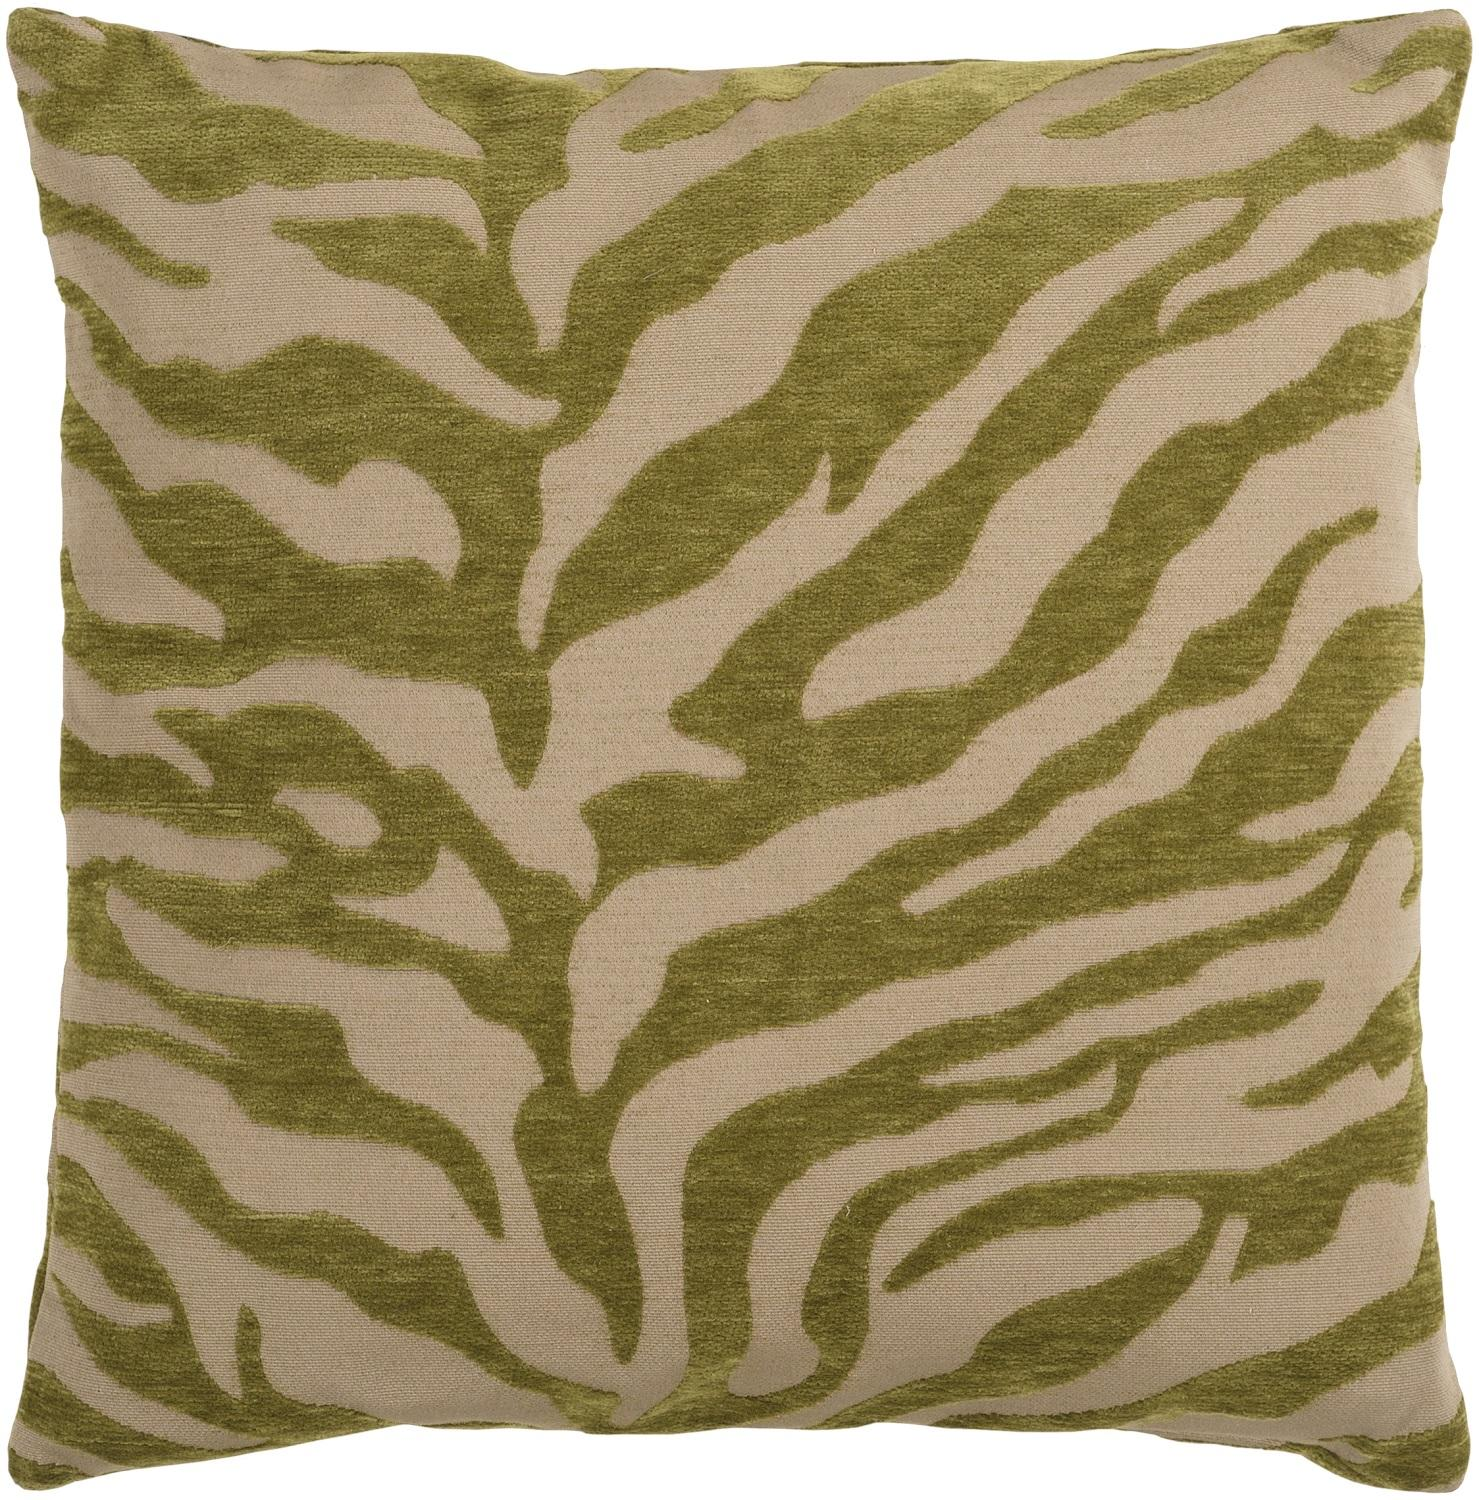 """18"""" Green and Beige Hot Animal Print Decorative Throw Pillow"""